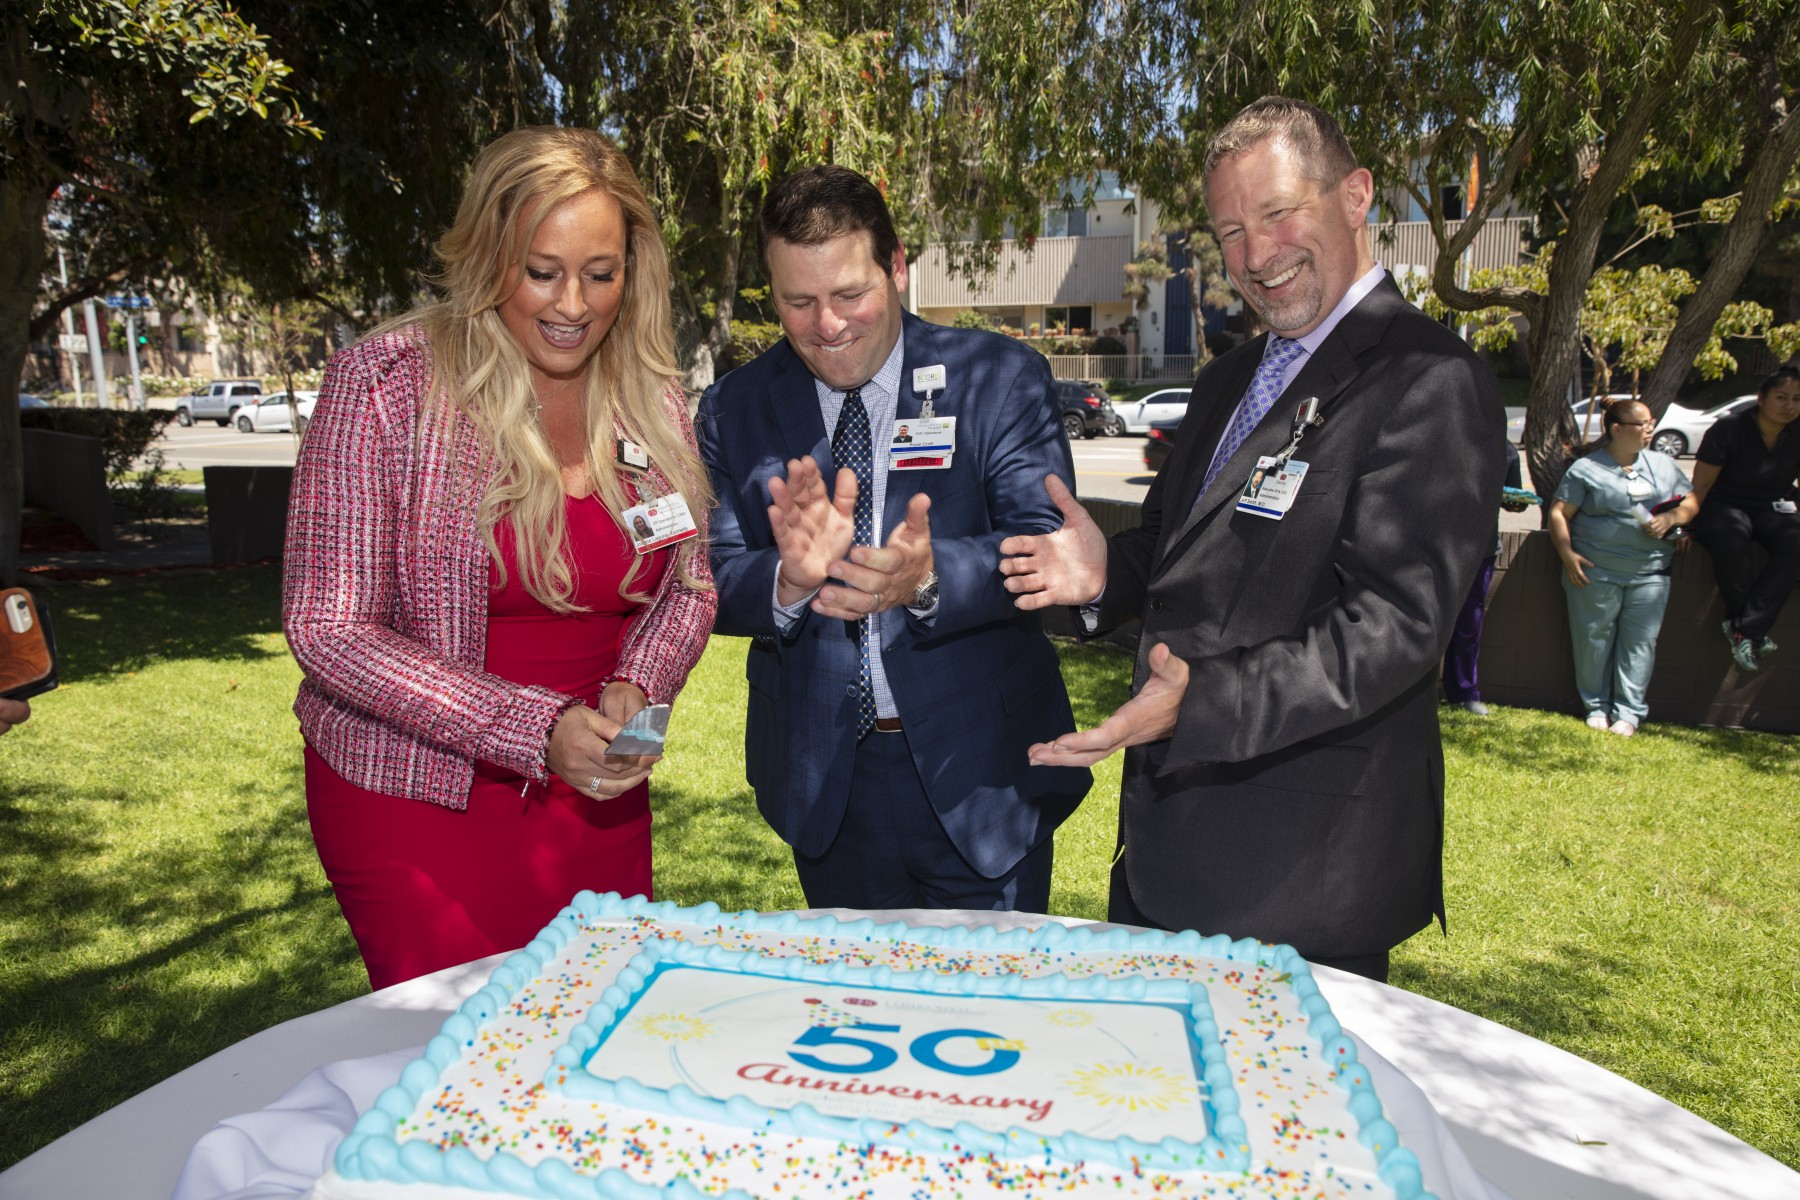 From left: Joanne Laguna-Kennedy, MSN, RN, VP of Hospital Operations and Chief Nursing Officer at Cedars-Sinai Marina del Rey Hospital, cuts the cake at the hospital's 50th anniversary party joined by Bryan Croft, Senior Vice President of operations,  and Jeff Smith, MD, JD, MMM, CEO of Cedars-Sinai Marina del Rey Hospital. Photo by Cedars-Sinai.